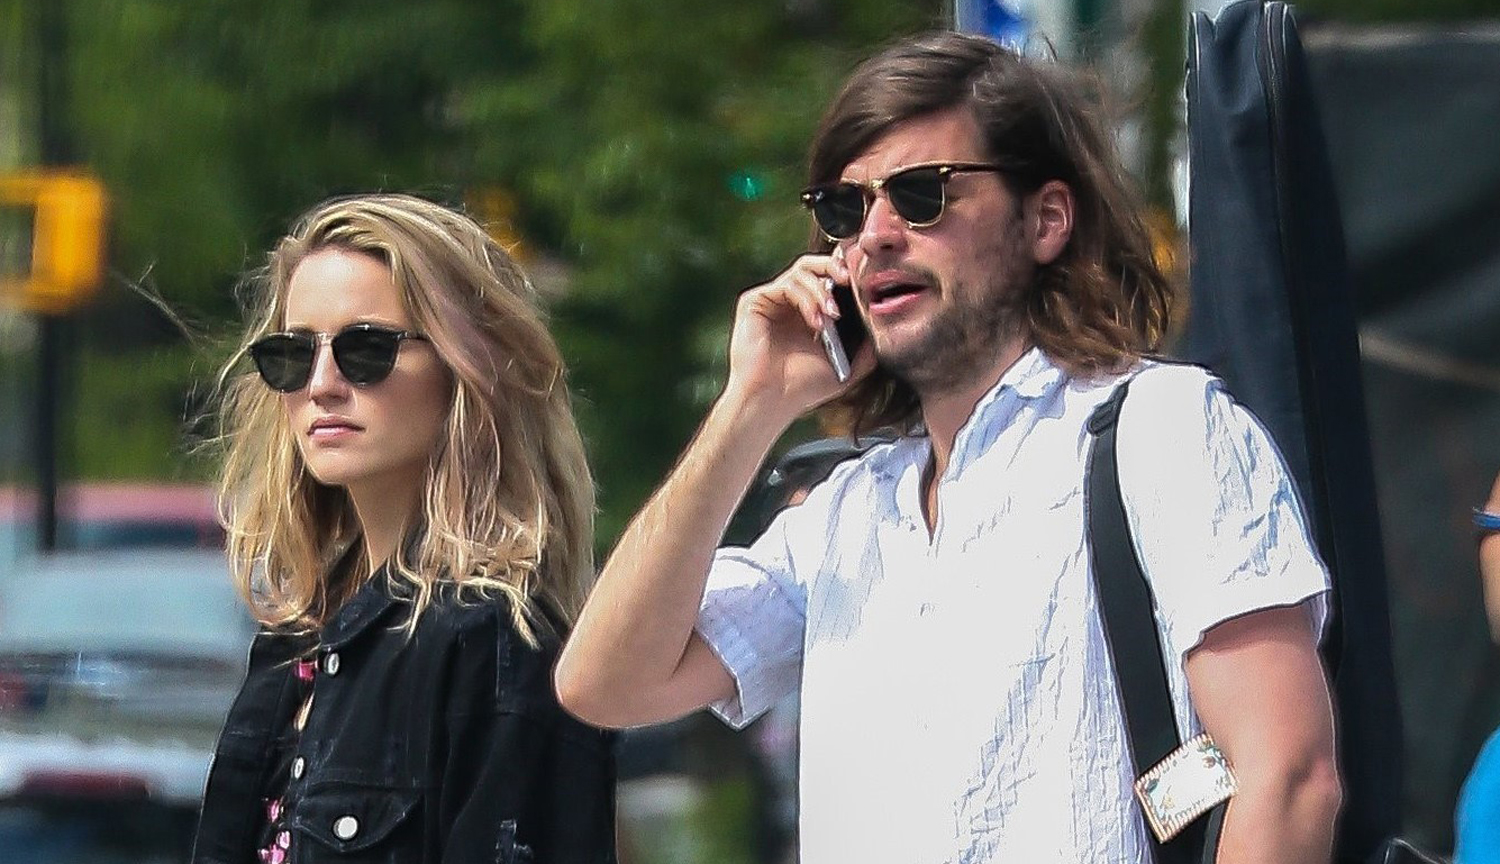 Dianna Agron Amp Hubby Winston Marshall Hang Out In Nyc